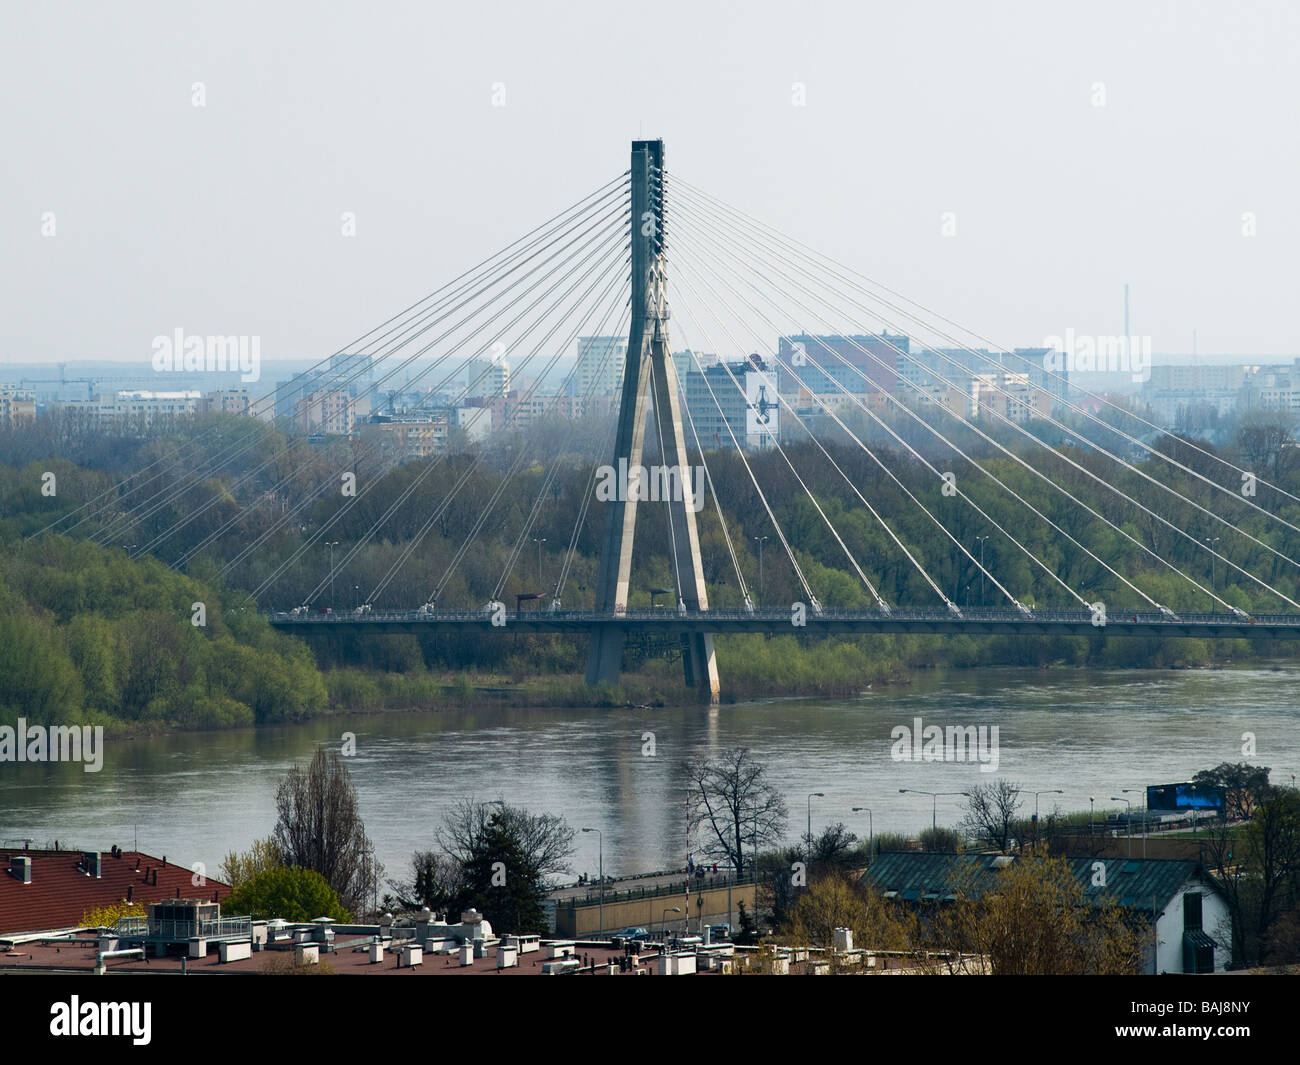 Suspension bridge opened in 2000 to join Praga district and city center of Warsaw - Stock Image